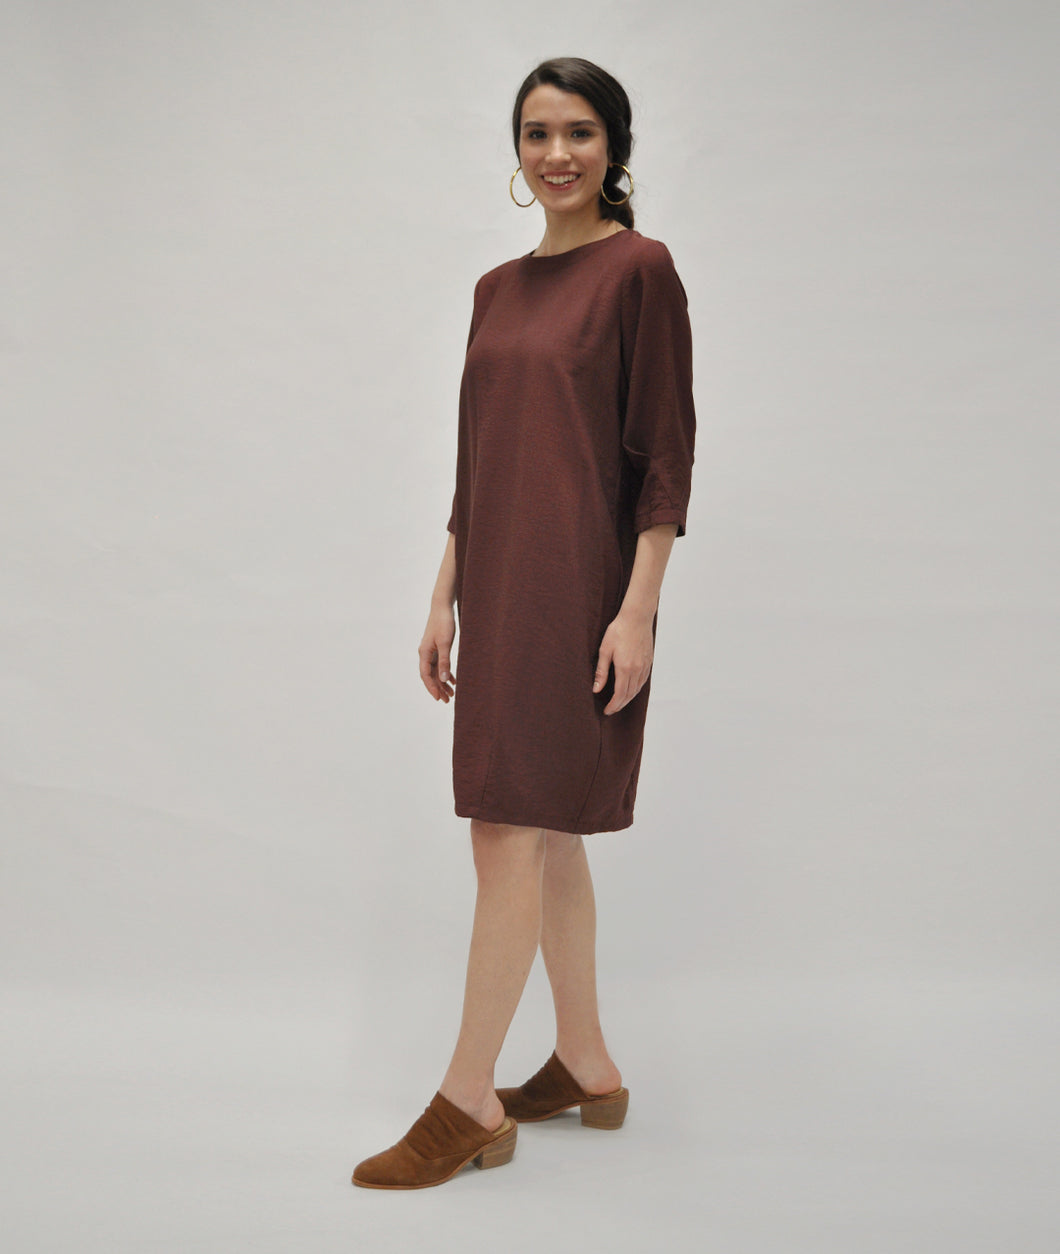 model in a burgundy shift dress with a pleating detail at the sleeves